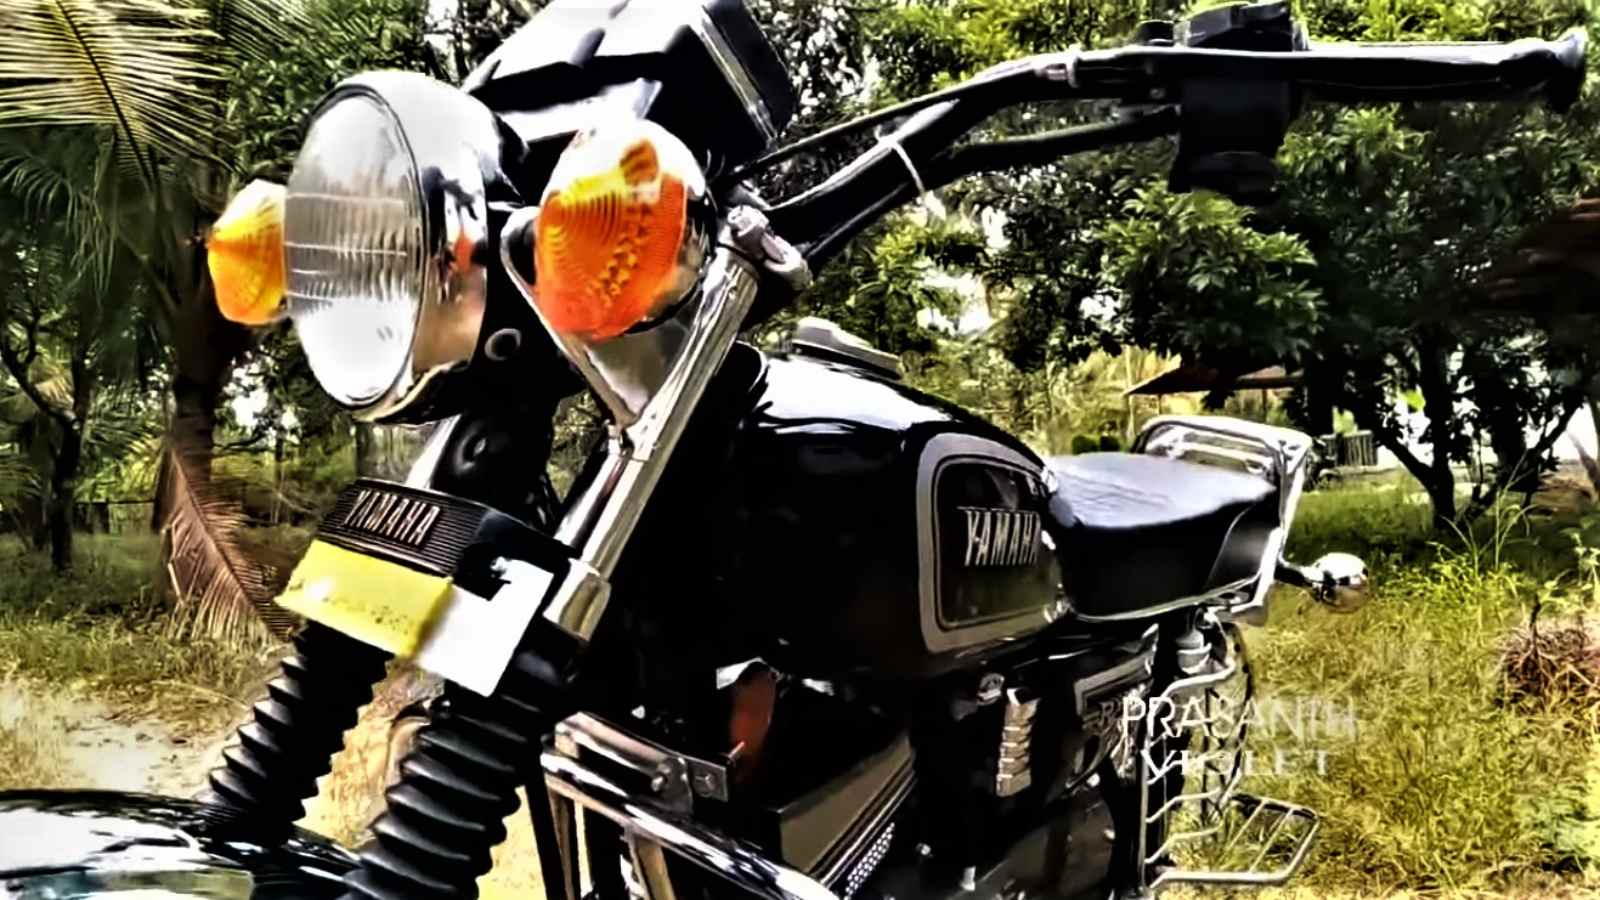 Yamaha RX 100 Goes From Drab To Fab In Five Minutes Of Time-Lapse